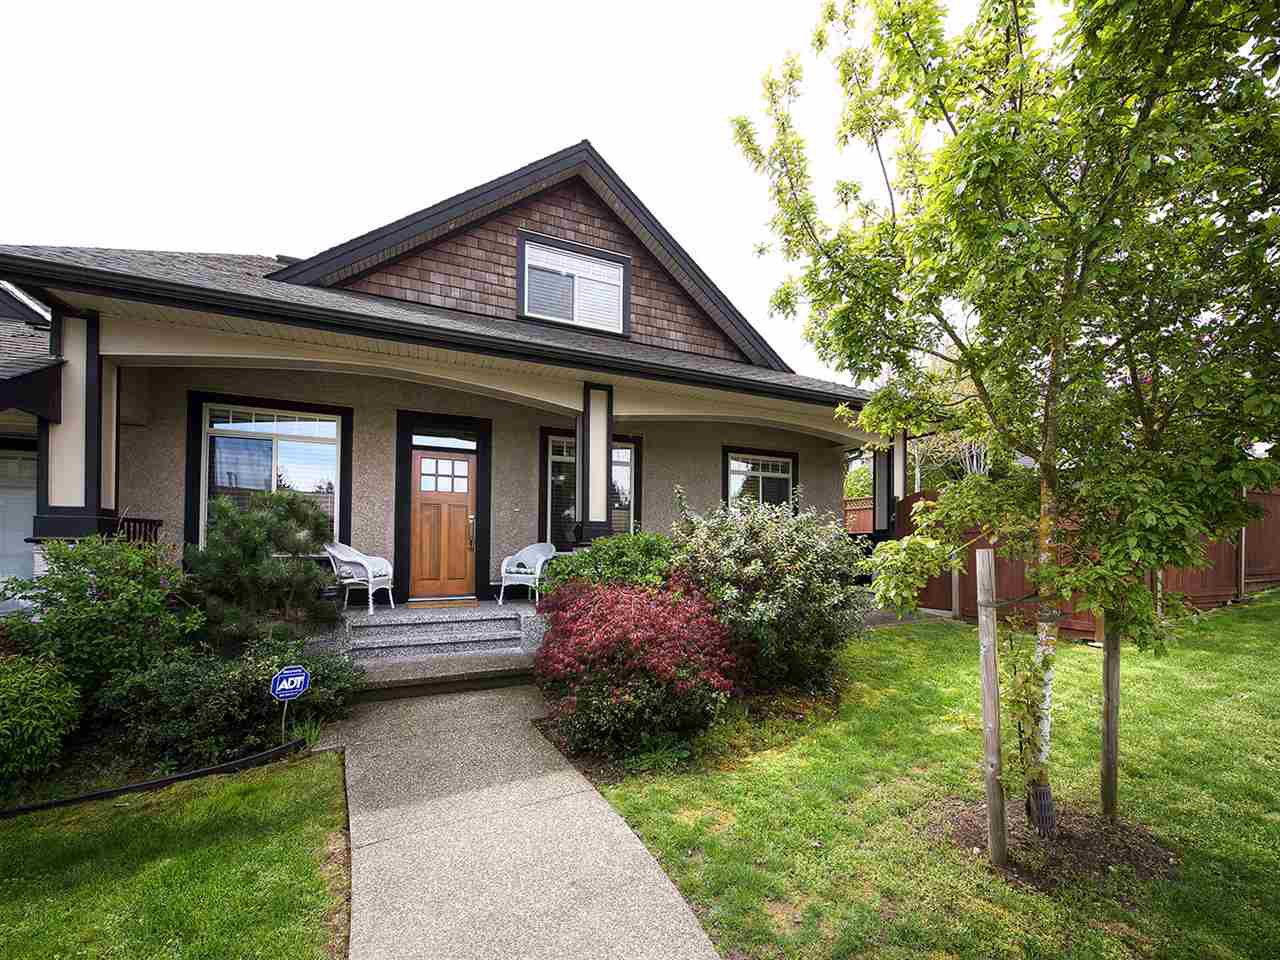 Main Photo: 390 55 Street in Delta: Pebble Hill 1/2 Duplex for sale (Tsawwassen)  : MLS®# R2162458